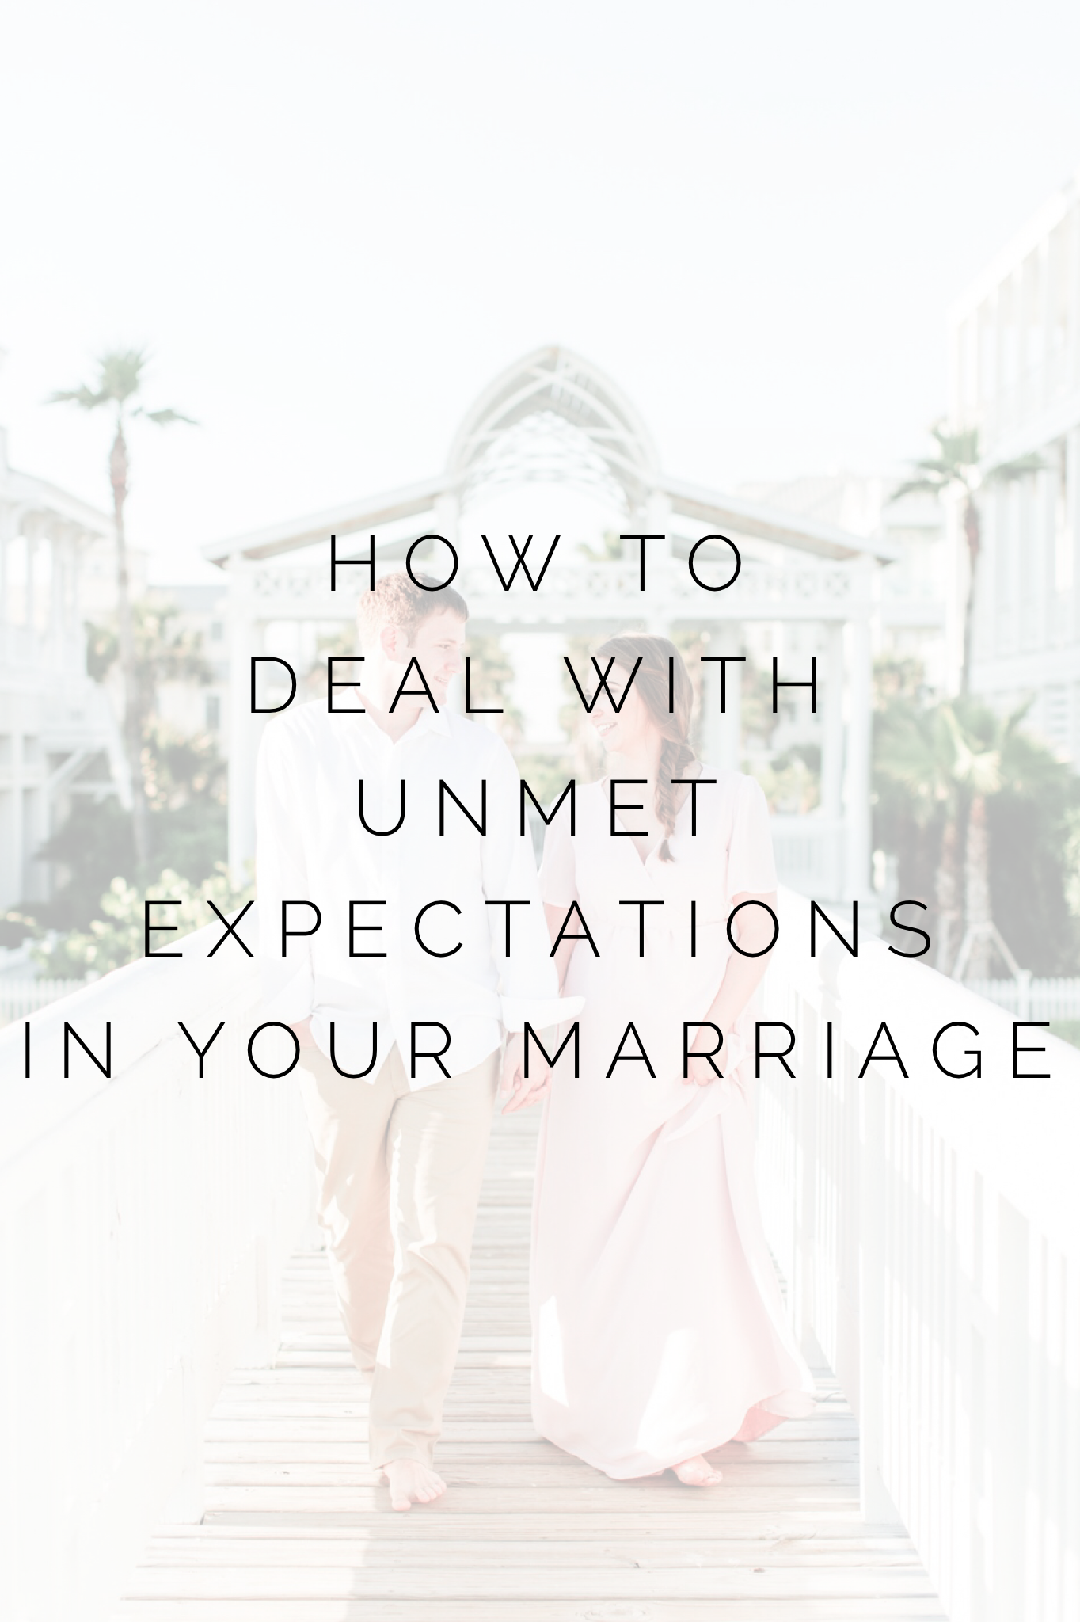 How To Deal With Unmet Expectations In Your Marriage